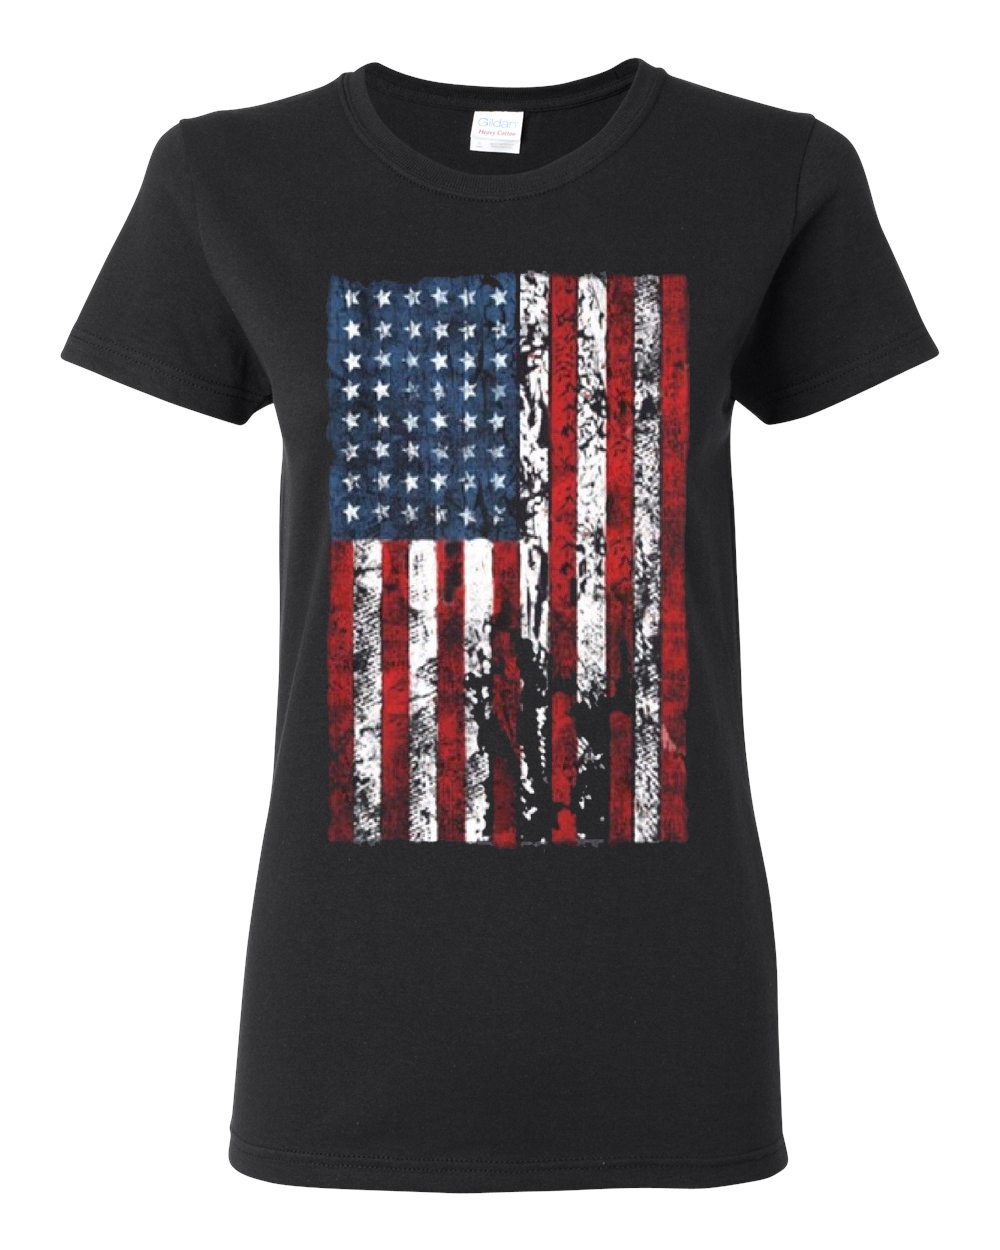 American clothing for women